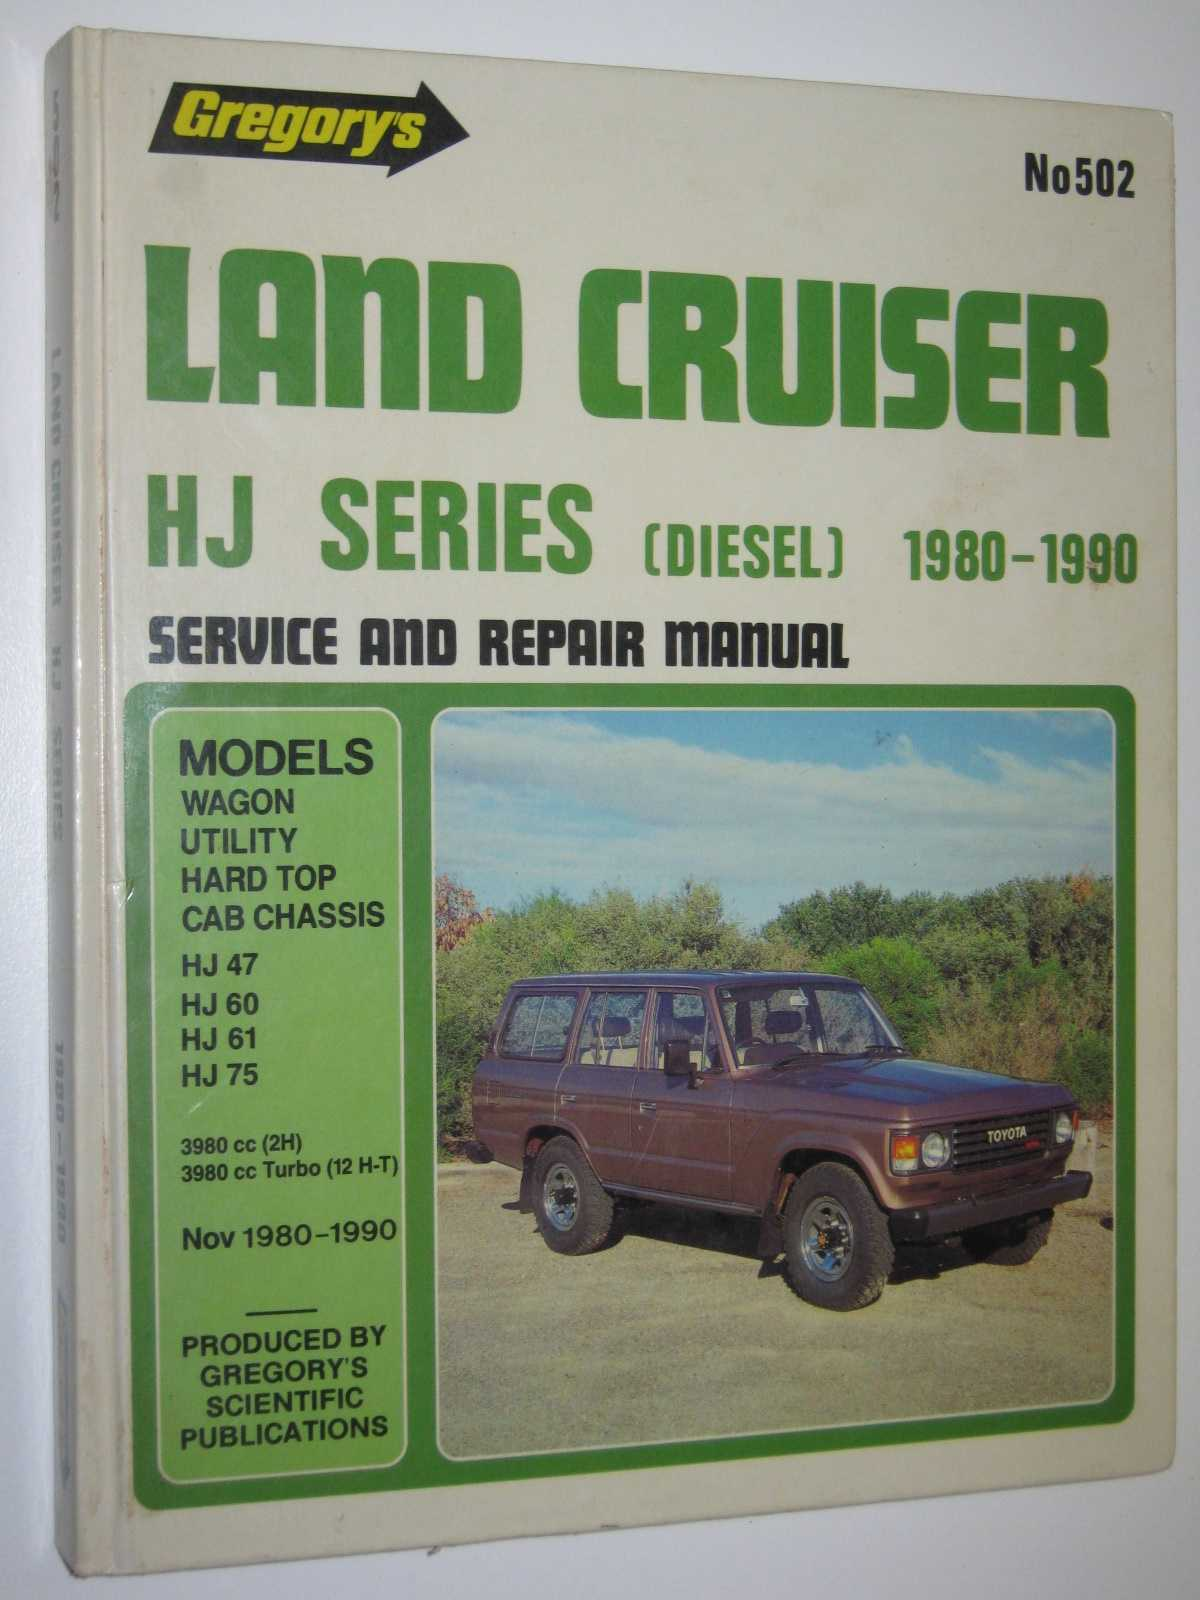 Image for Toyota Land Cruiser HJ Series Diesel 1980-1990 - Service and Repair Manual Series #502